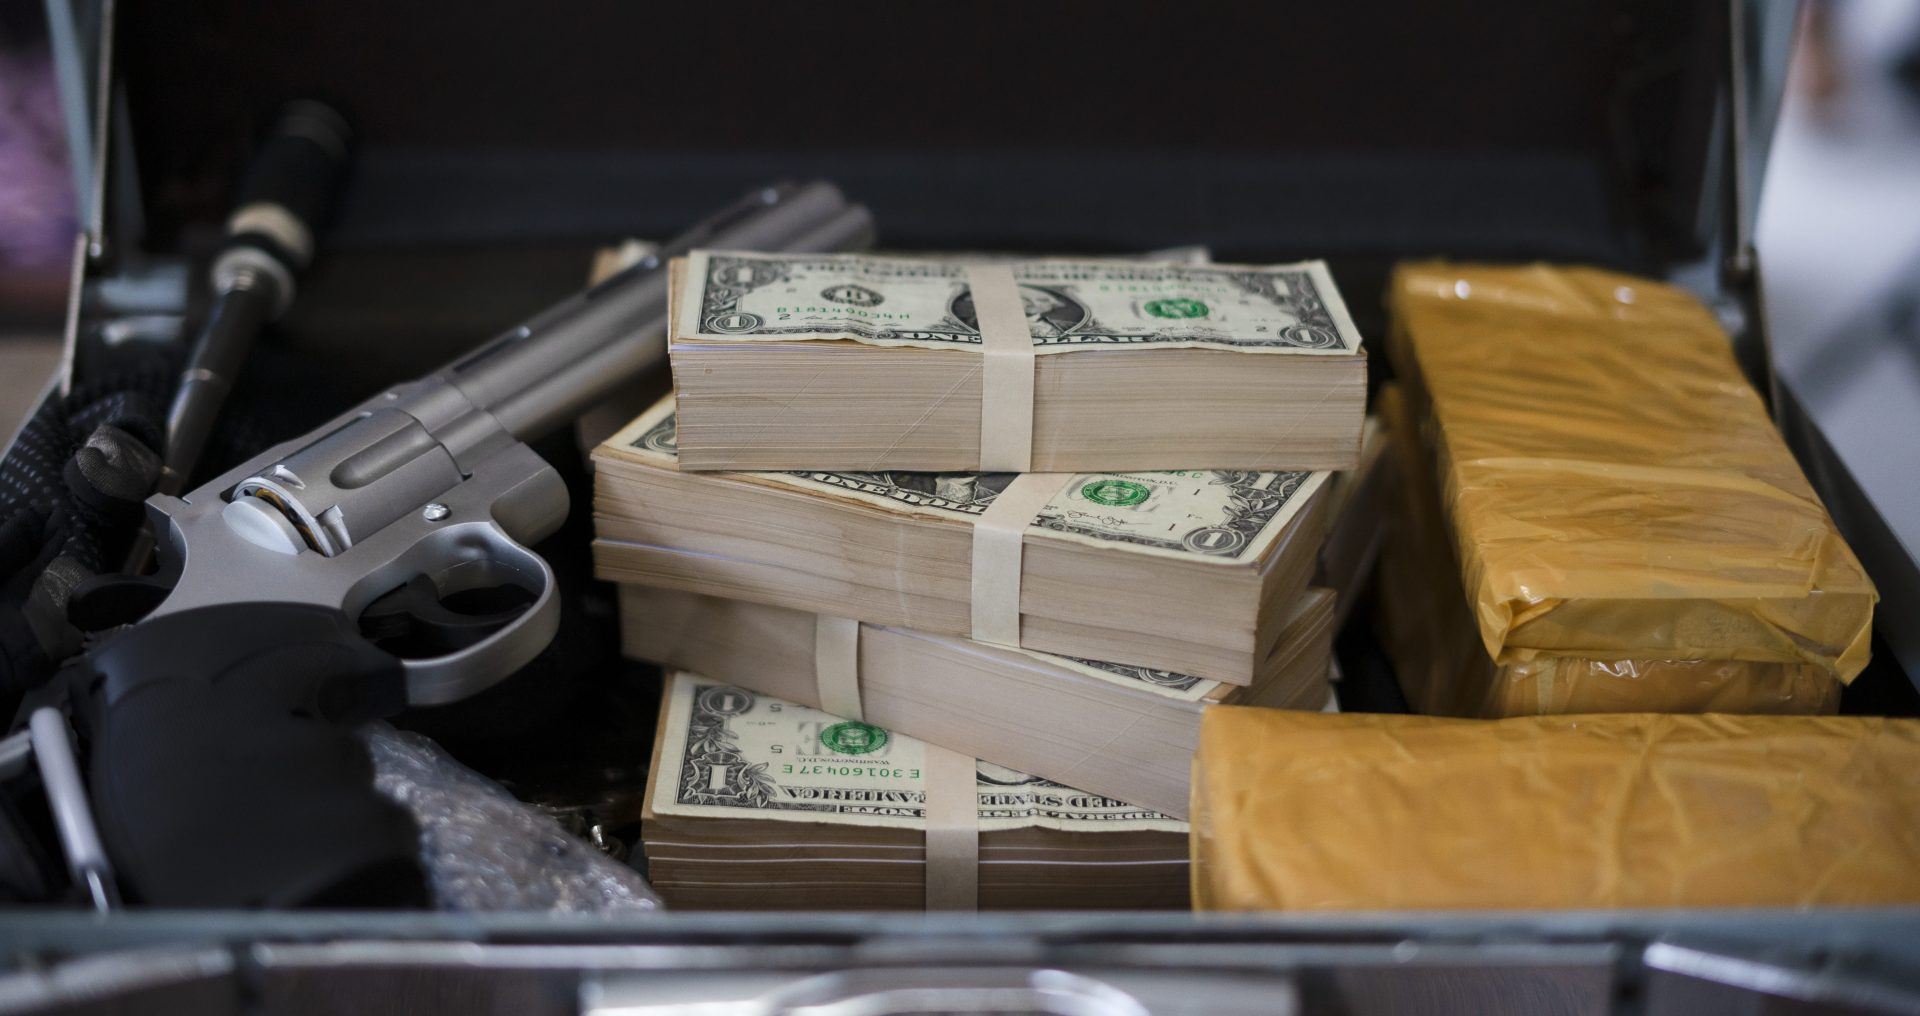 stacks of money and drugs with a gun depicting drug bust, contact our office for the best Michigan Criminal Defense Lawyer.